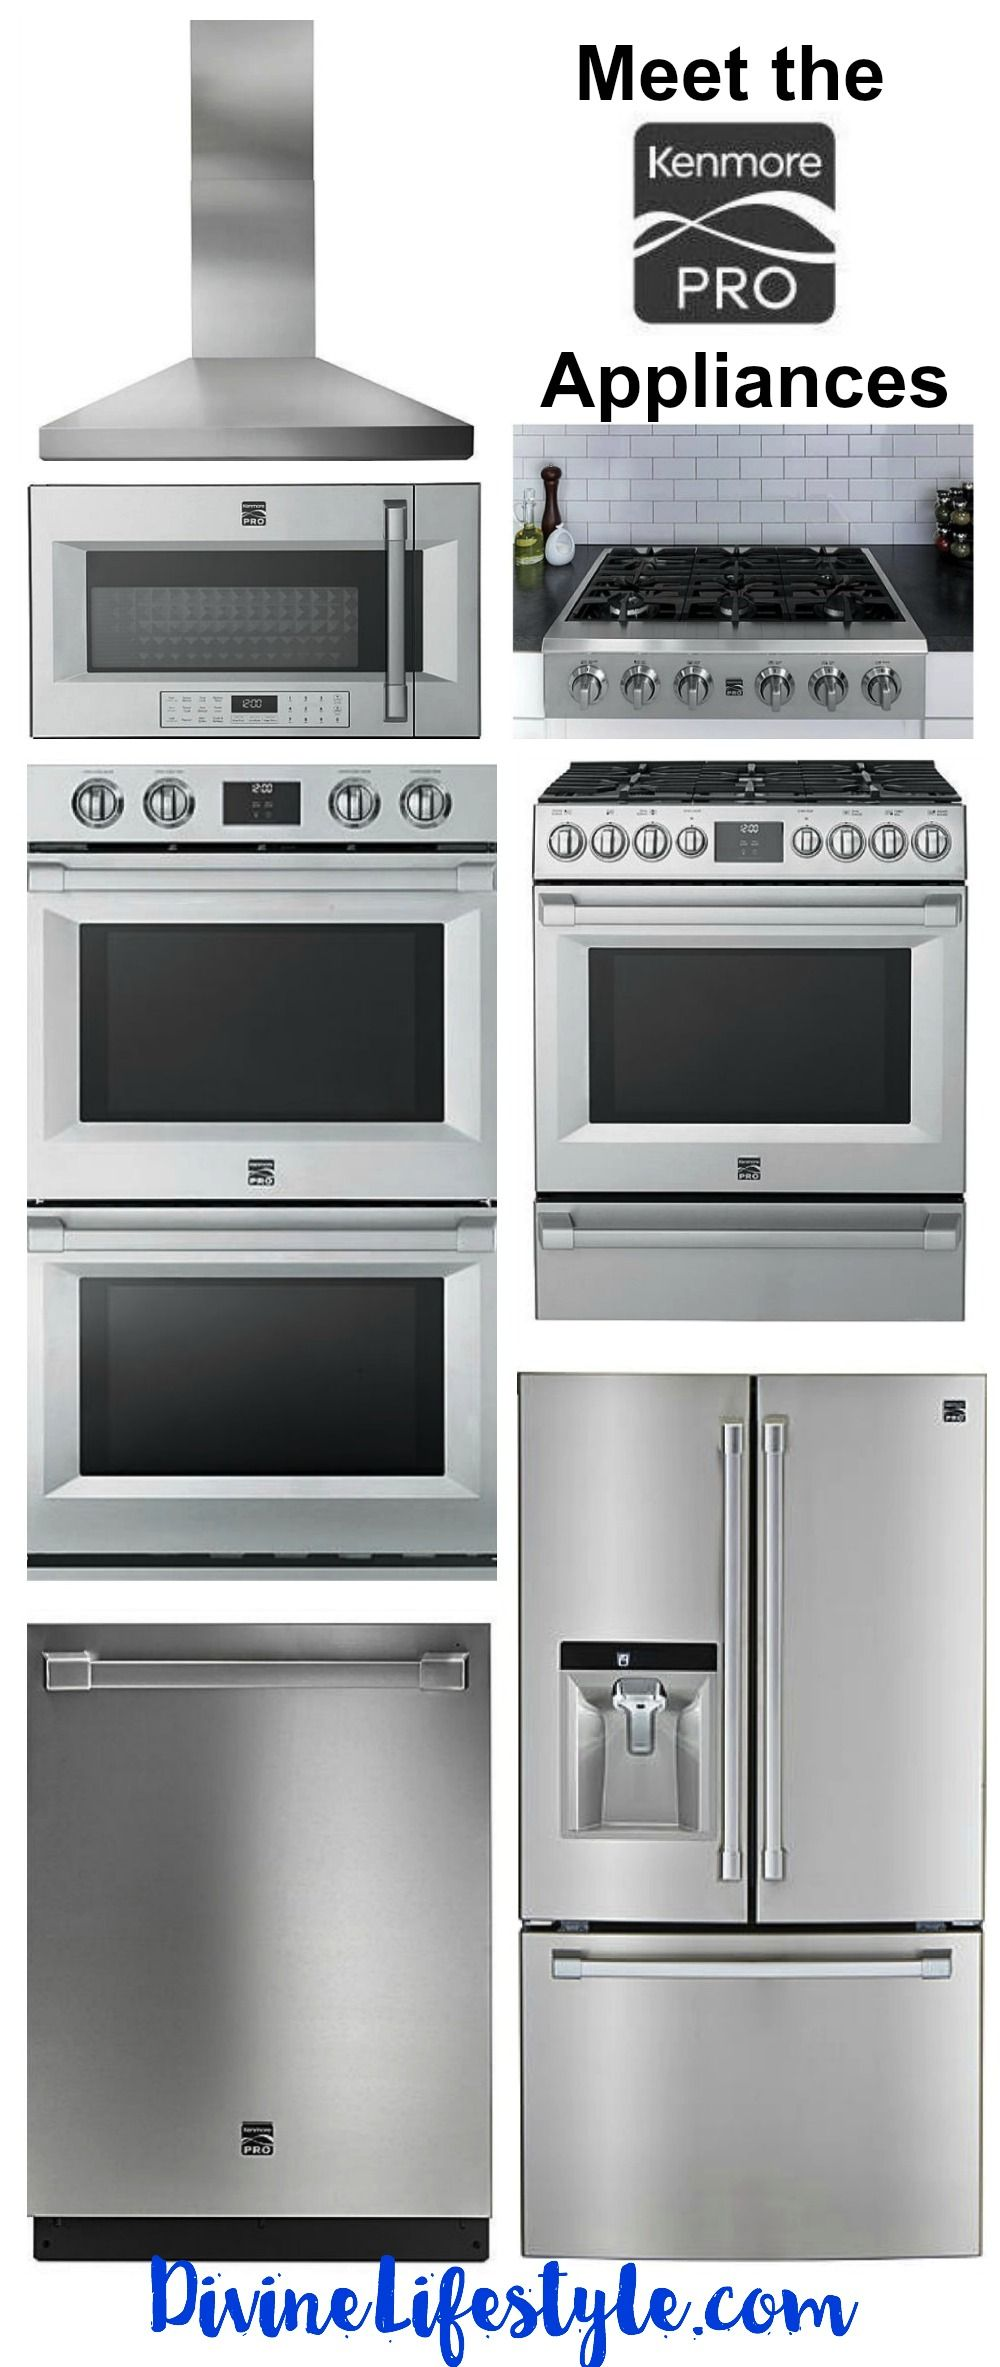 Building The Kitchen Of Your Dreams Do Yourself A Favor And Checkout The Kenmore Pro Line Of Appliances Sleek Wall Oven Kitchen Wall Oven Kitchen Appliances